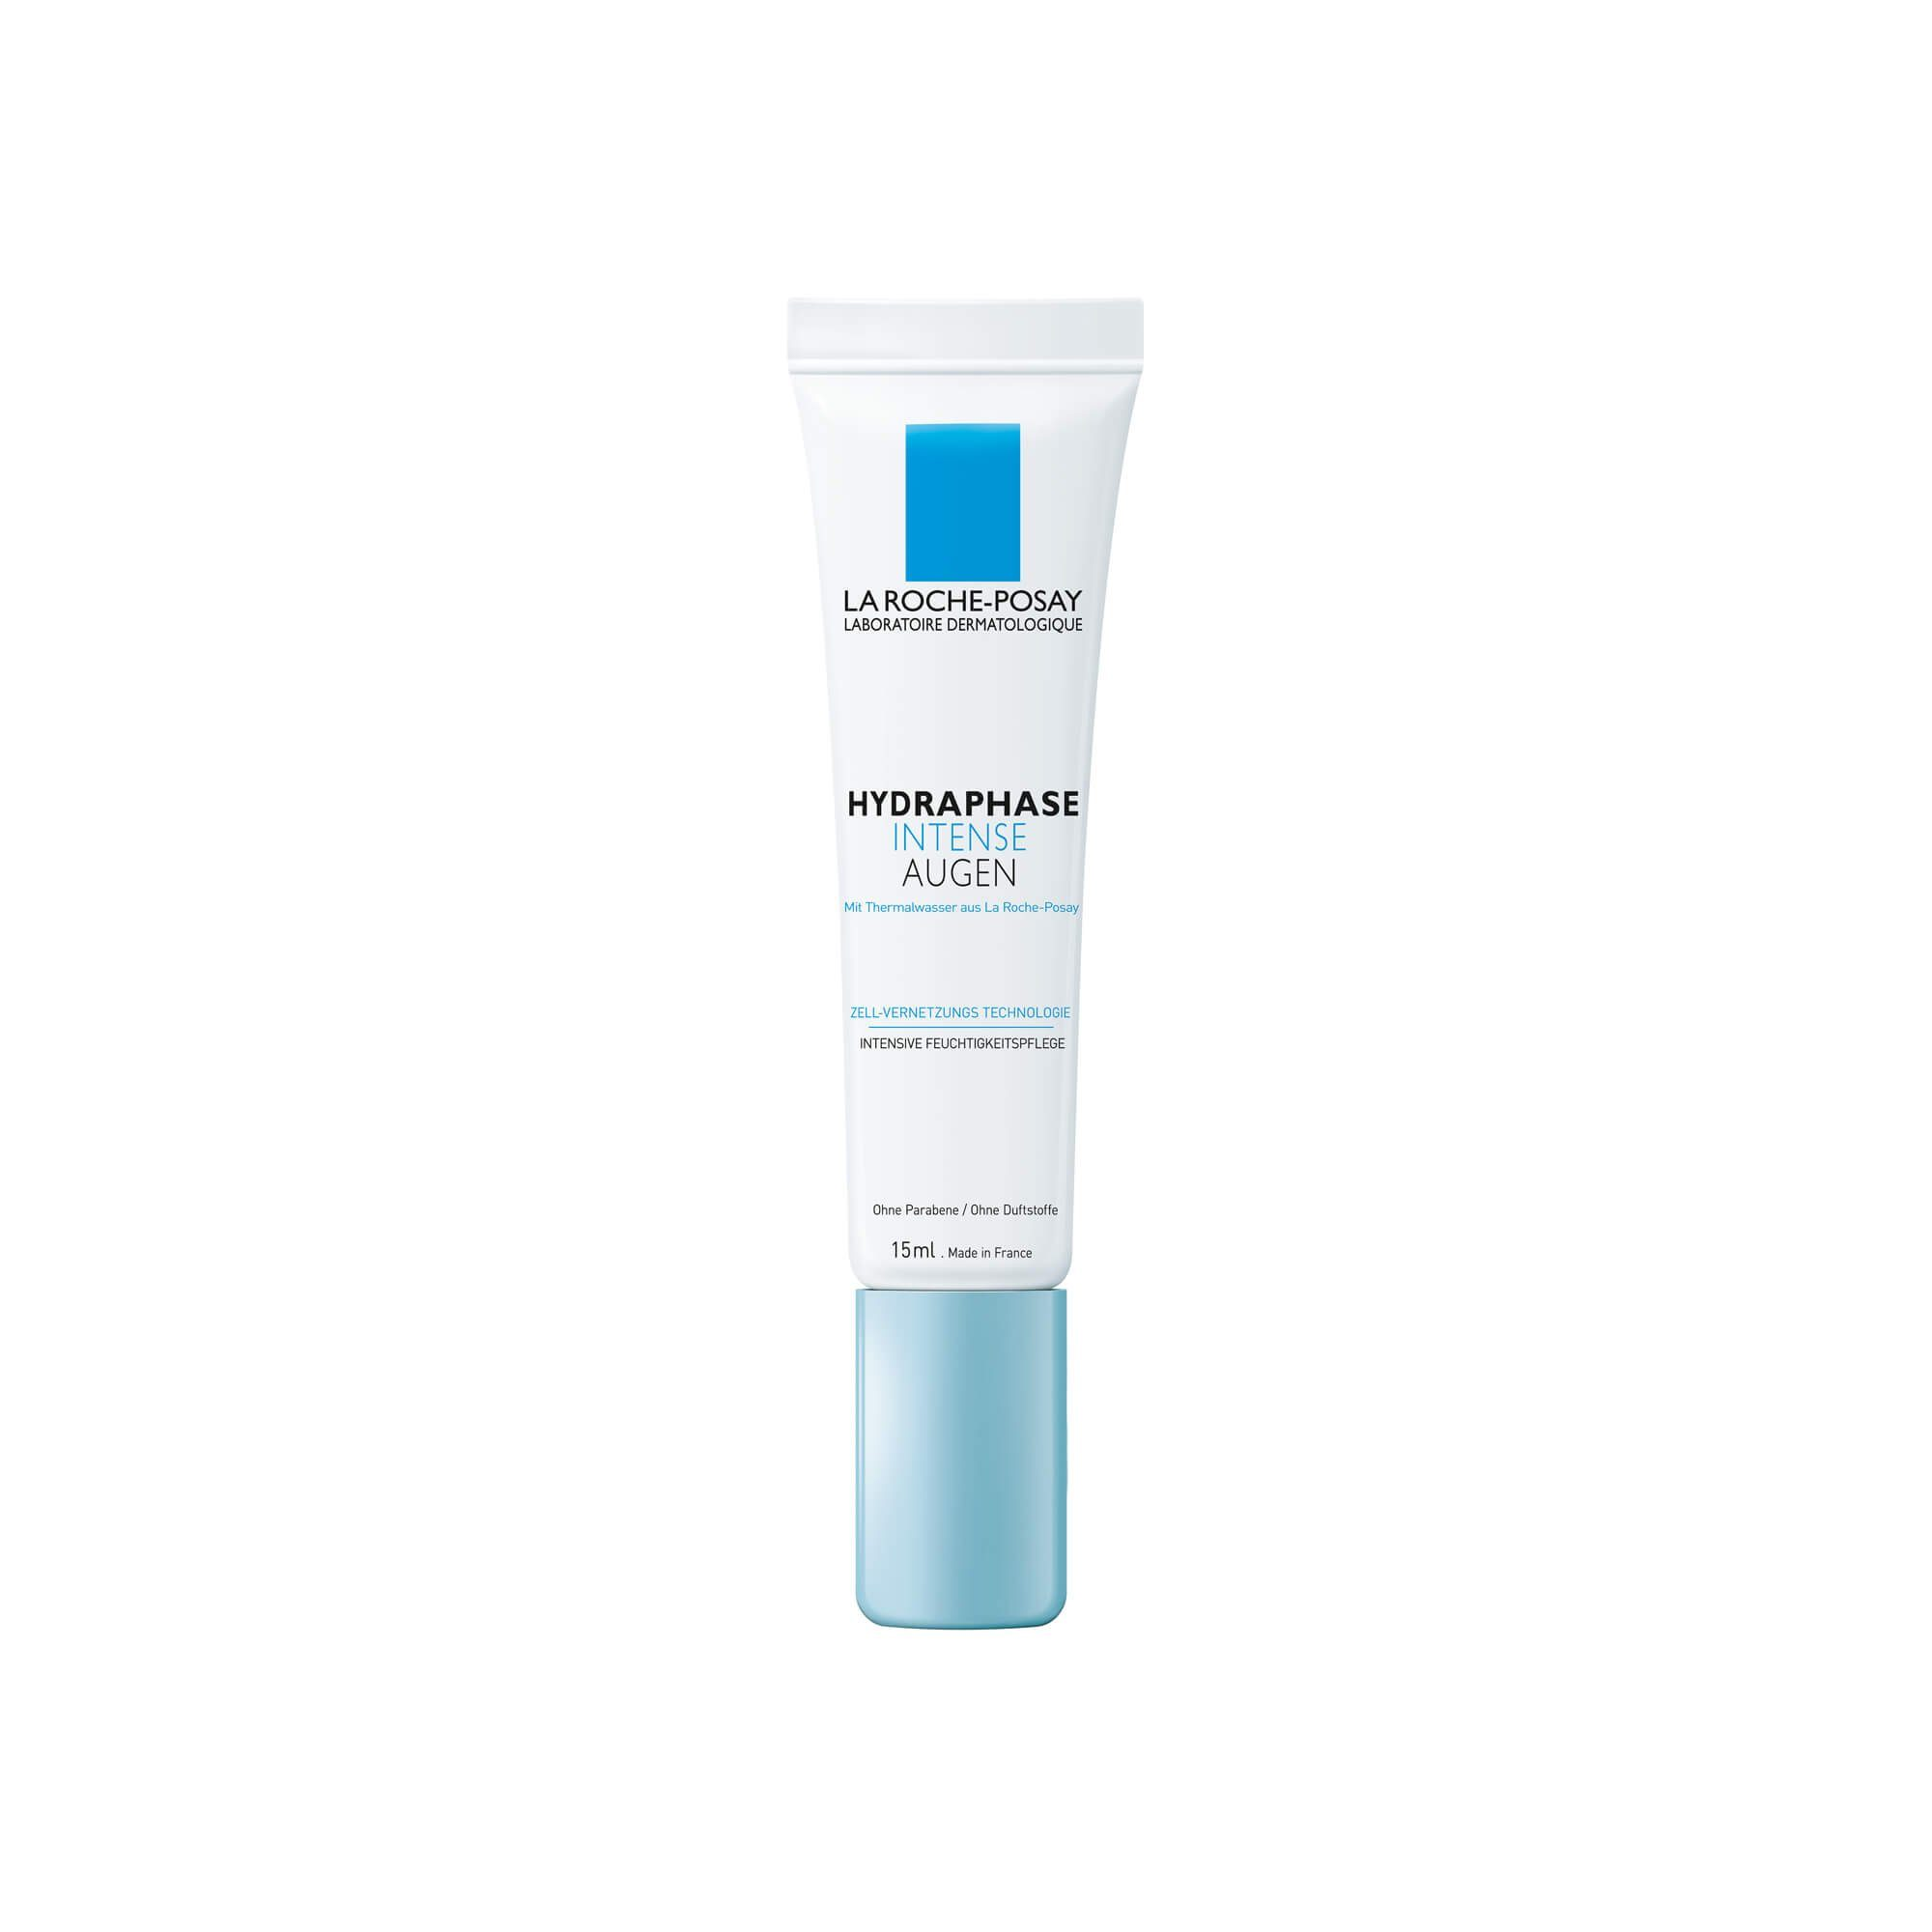 Roche Posay Hydraphase Intense Augencreme , 15 ml